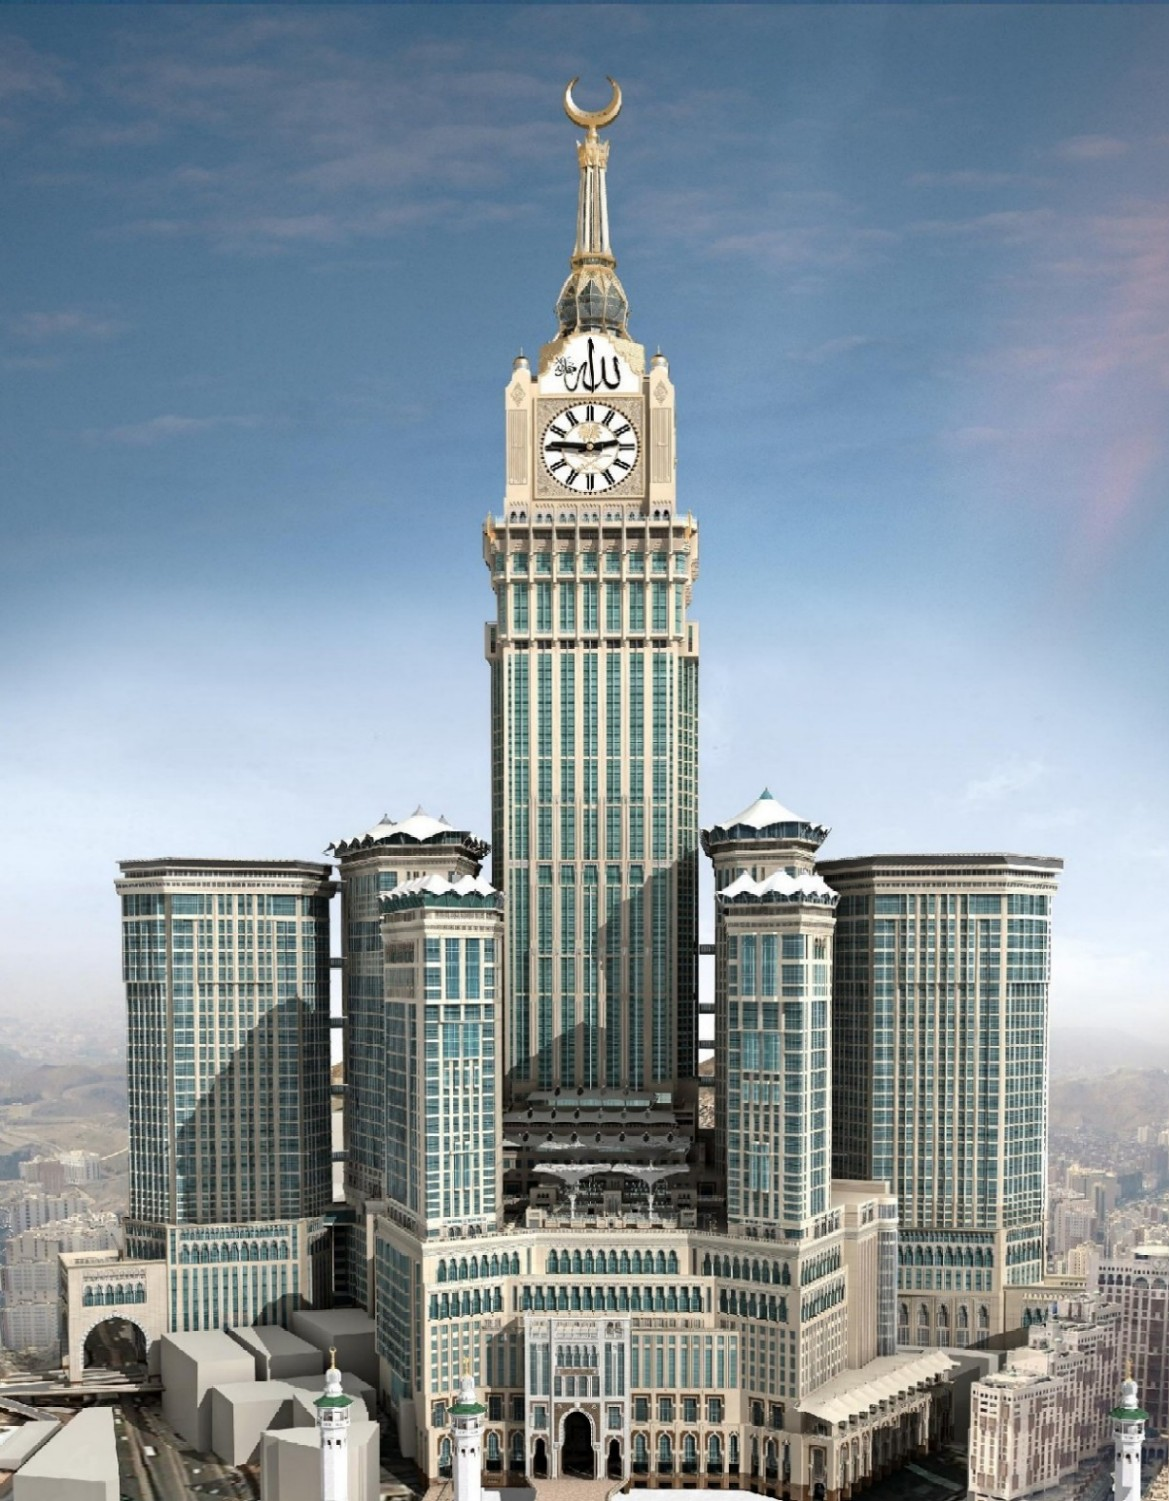 Abraj al bait tower the mecca clock tower – mecca saudi arabia